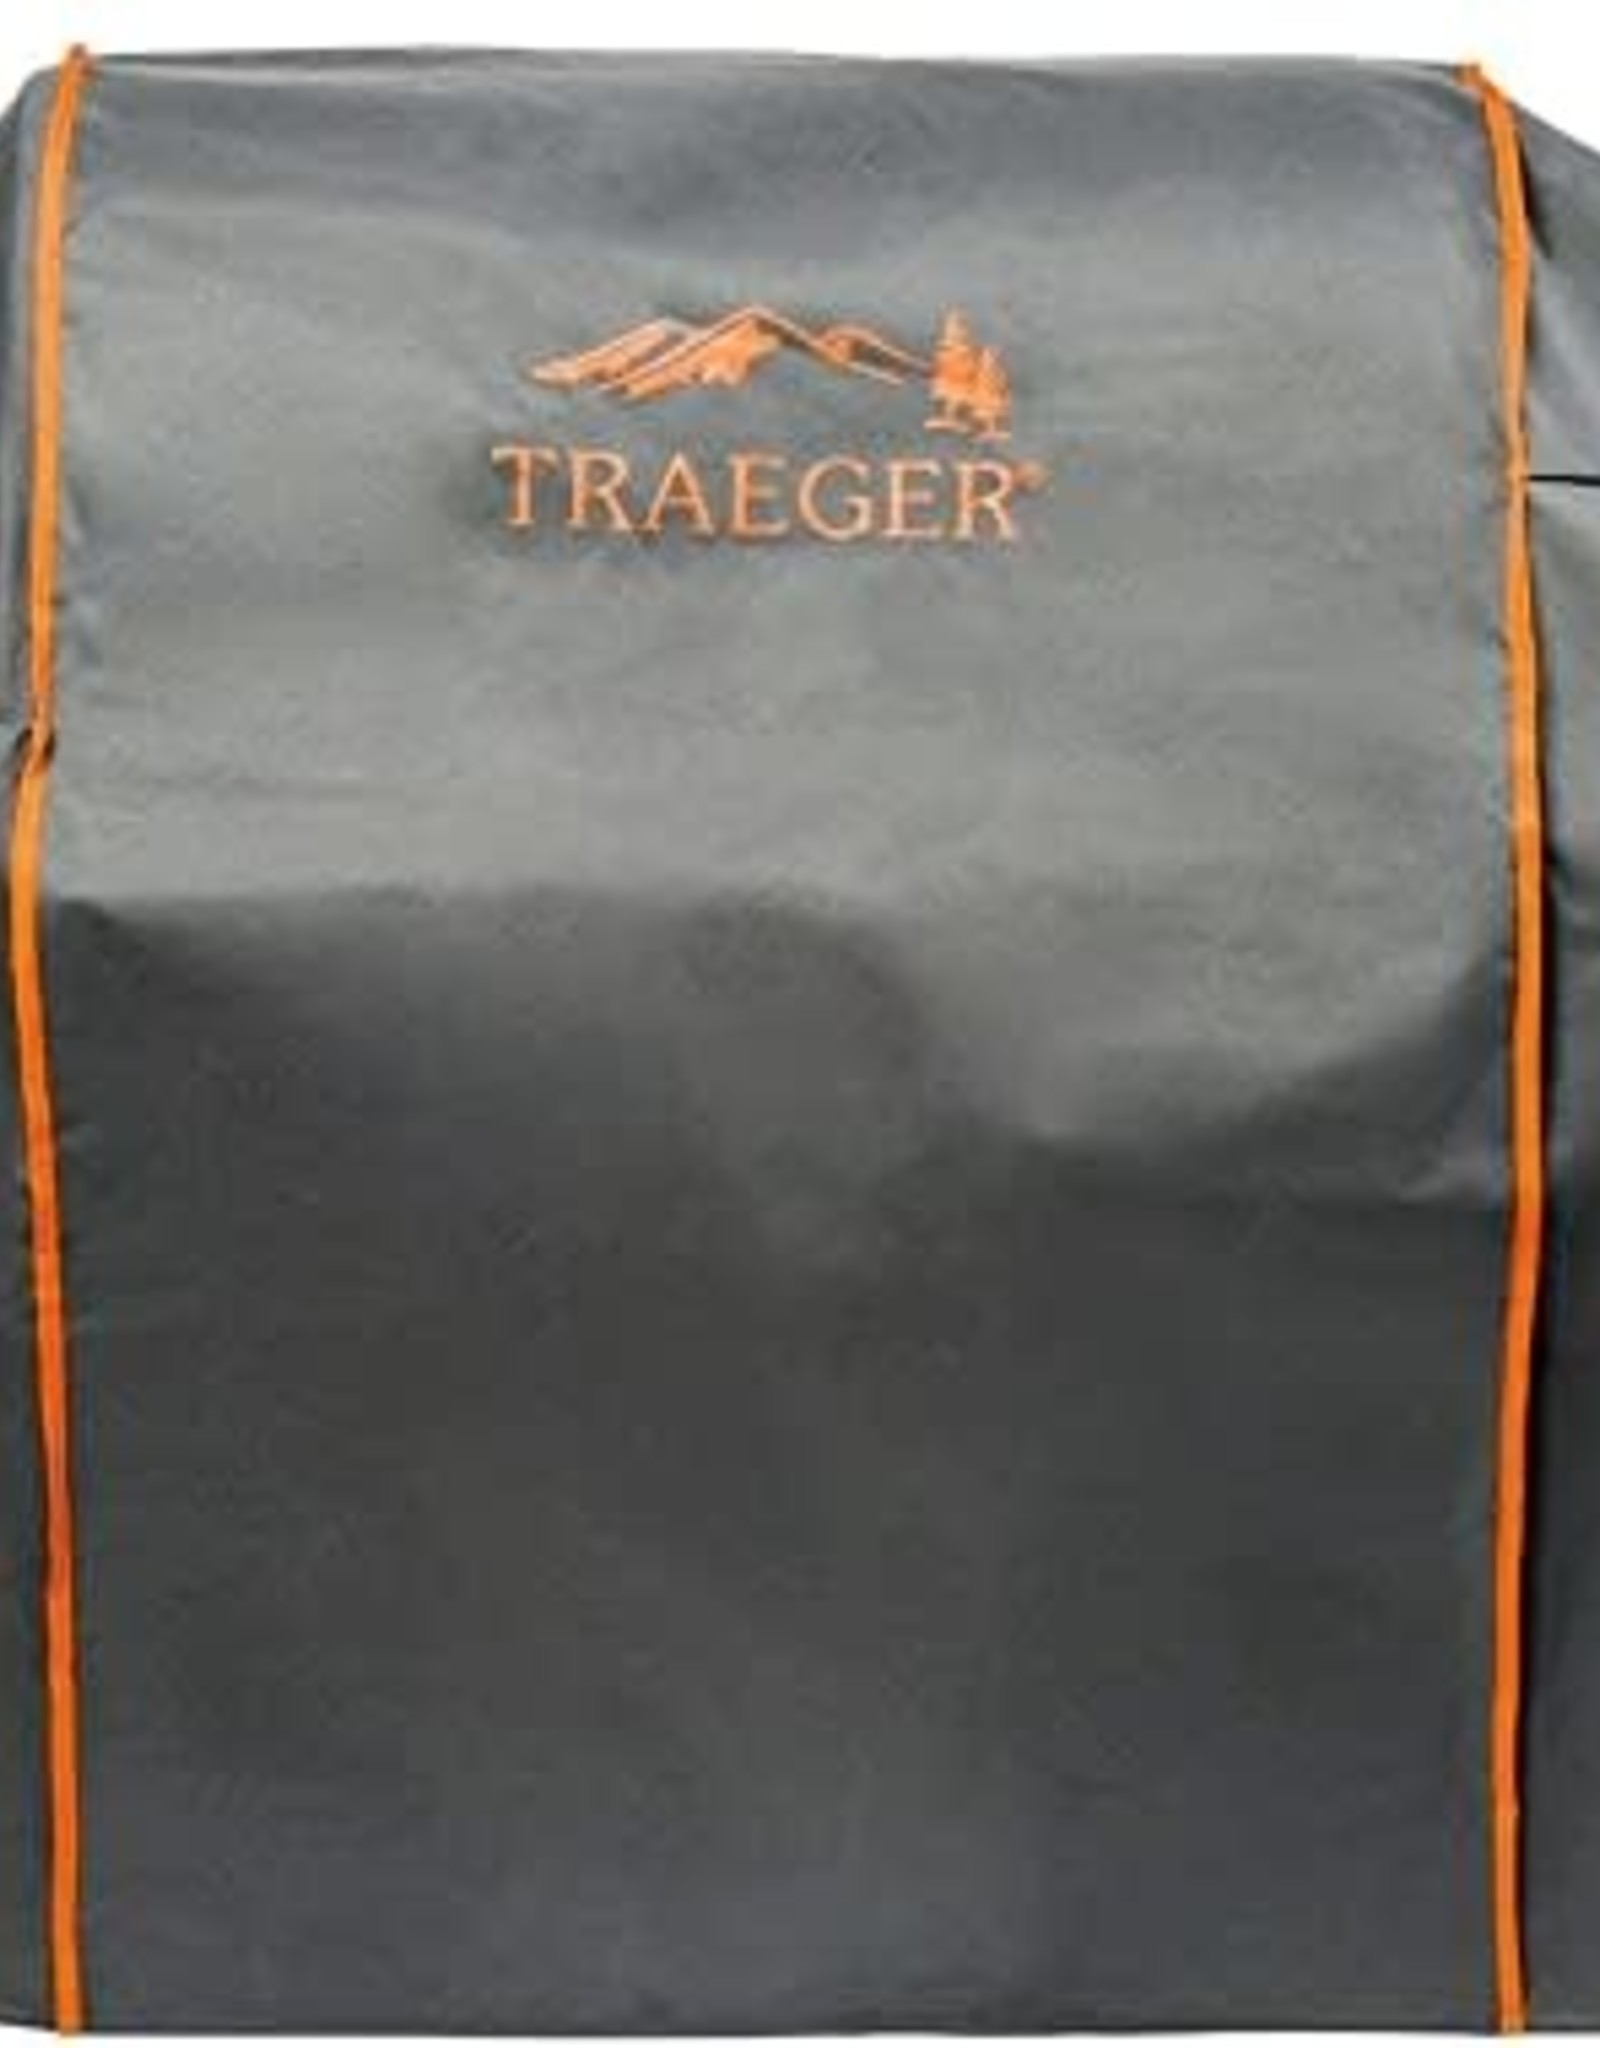 Traeger Traeger Full Length Grill Cover For Timberline 1300 - BAC360